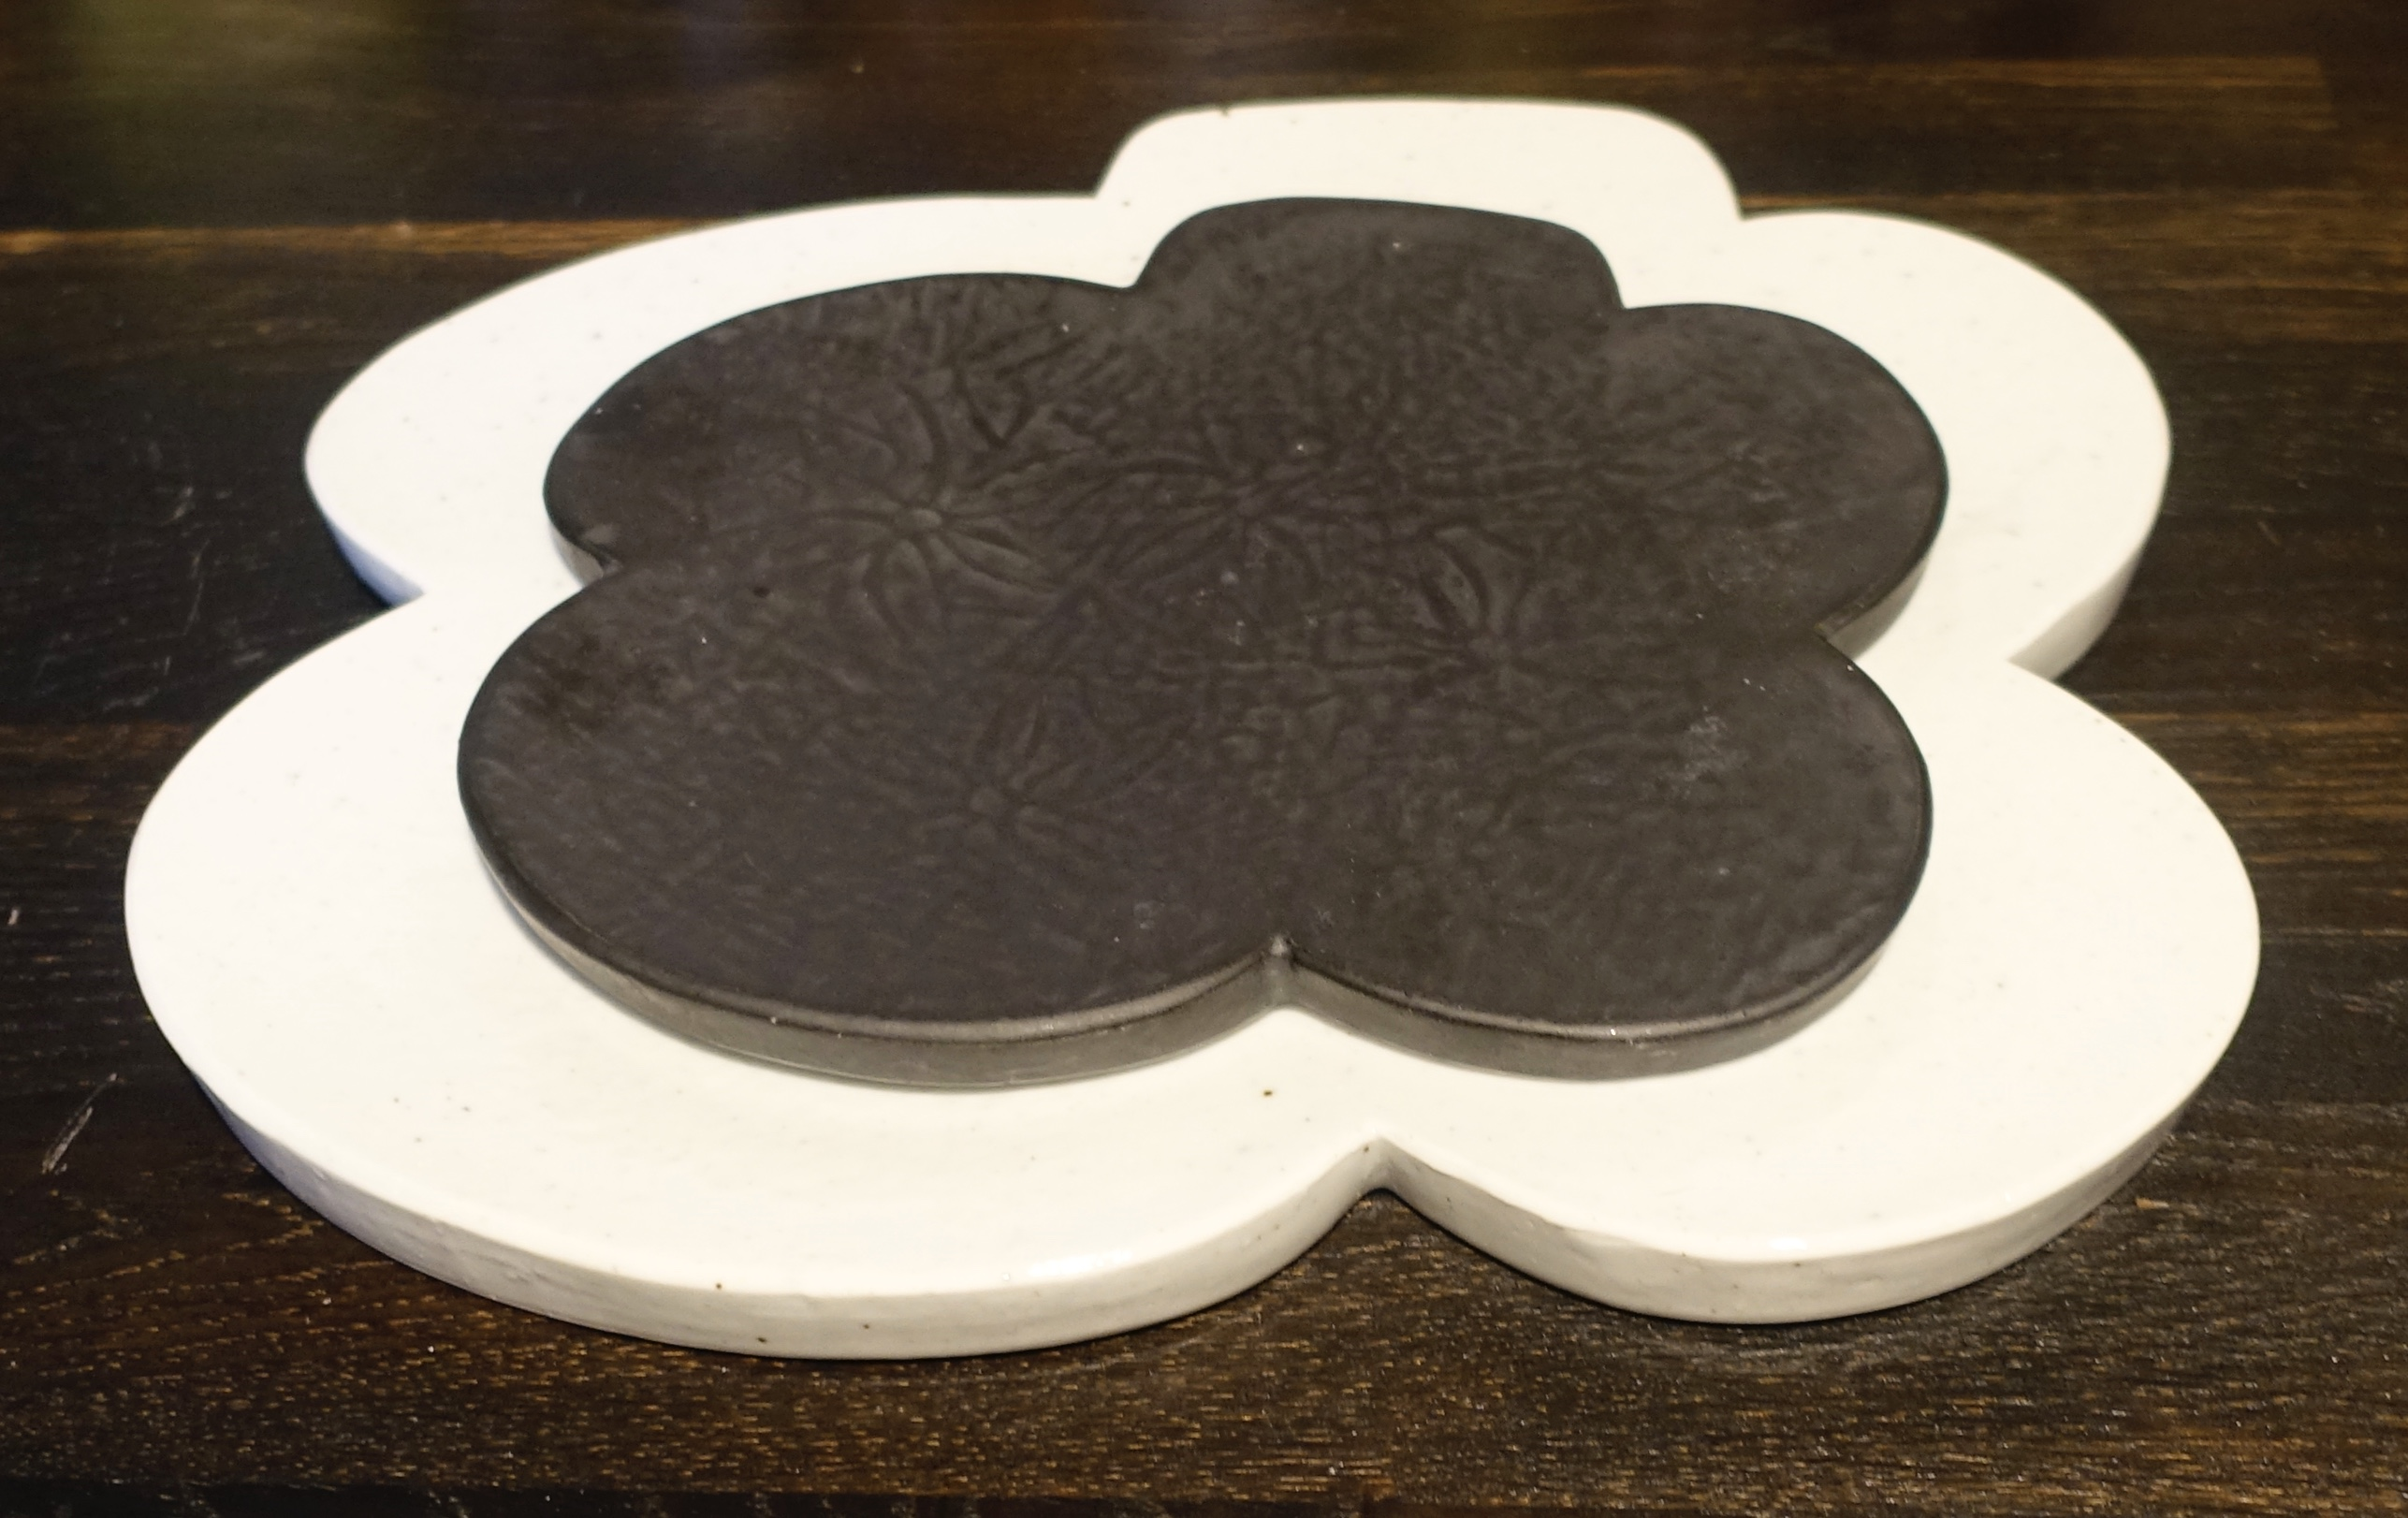 Flower Shape Plates